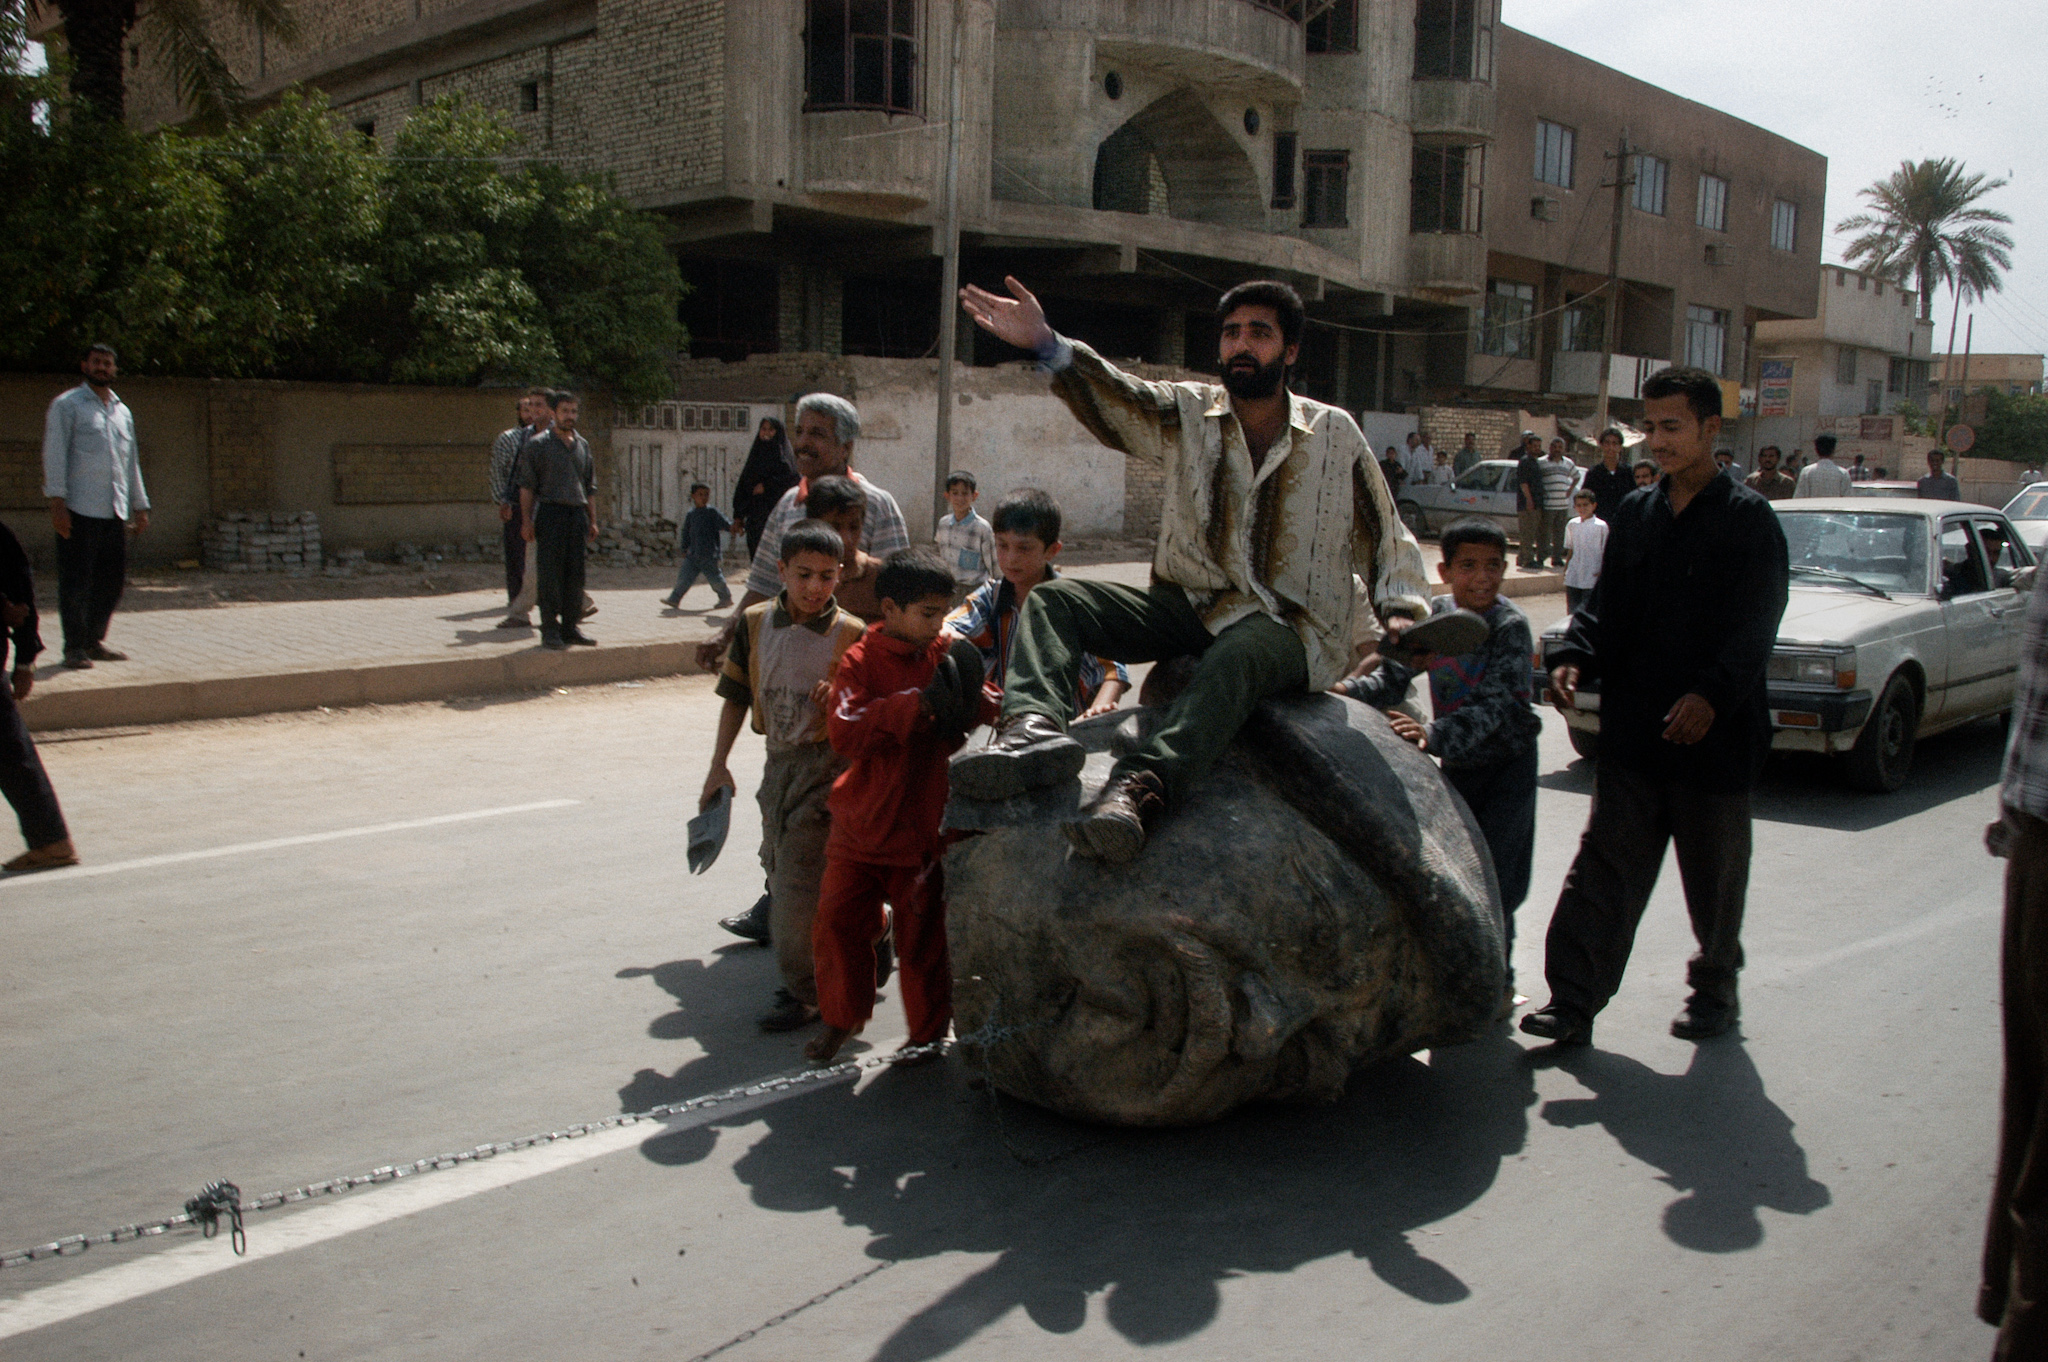 Baghdad, Iraq  April 18, 2003  Iraqis ride a head of Saddam Hussein being dragged by a truck. They are also beating it with shoes, which is considered to be the most insulting gesture in Iraqi society.  Photograph by Alan Chin